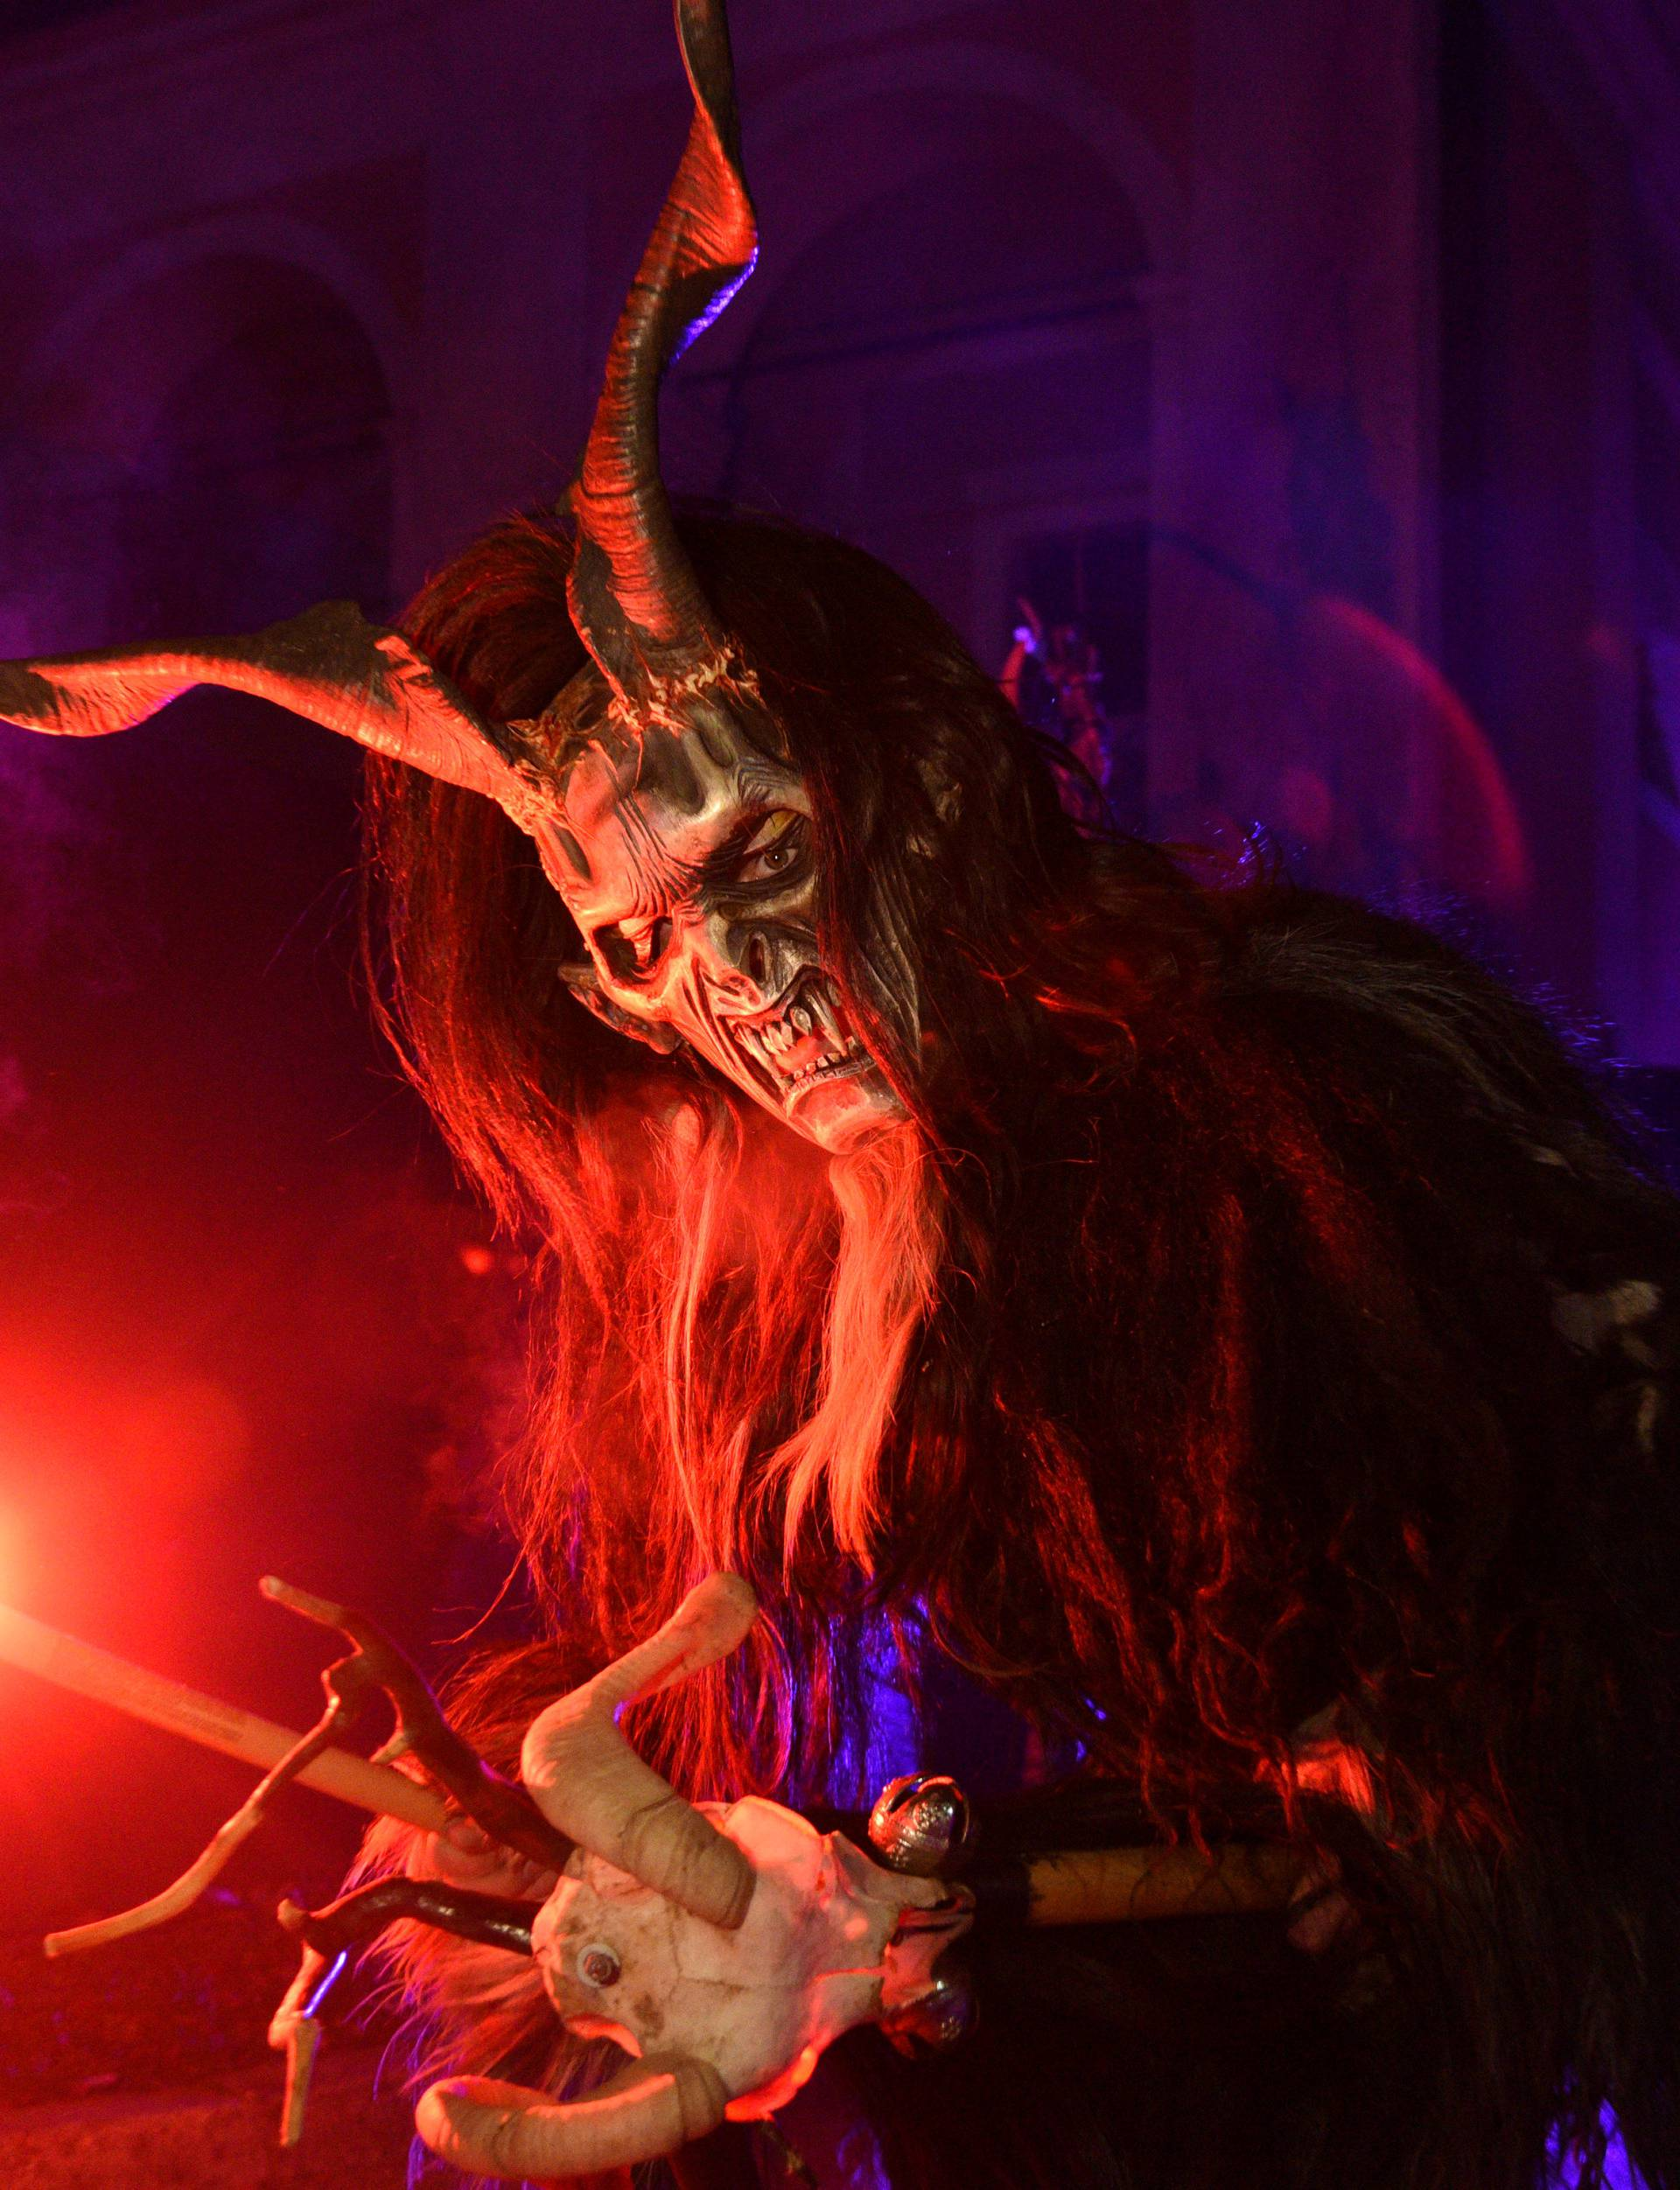 A man dressed as a devil performs during a Krampus show in Goricane